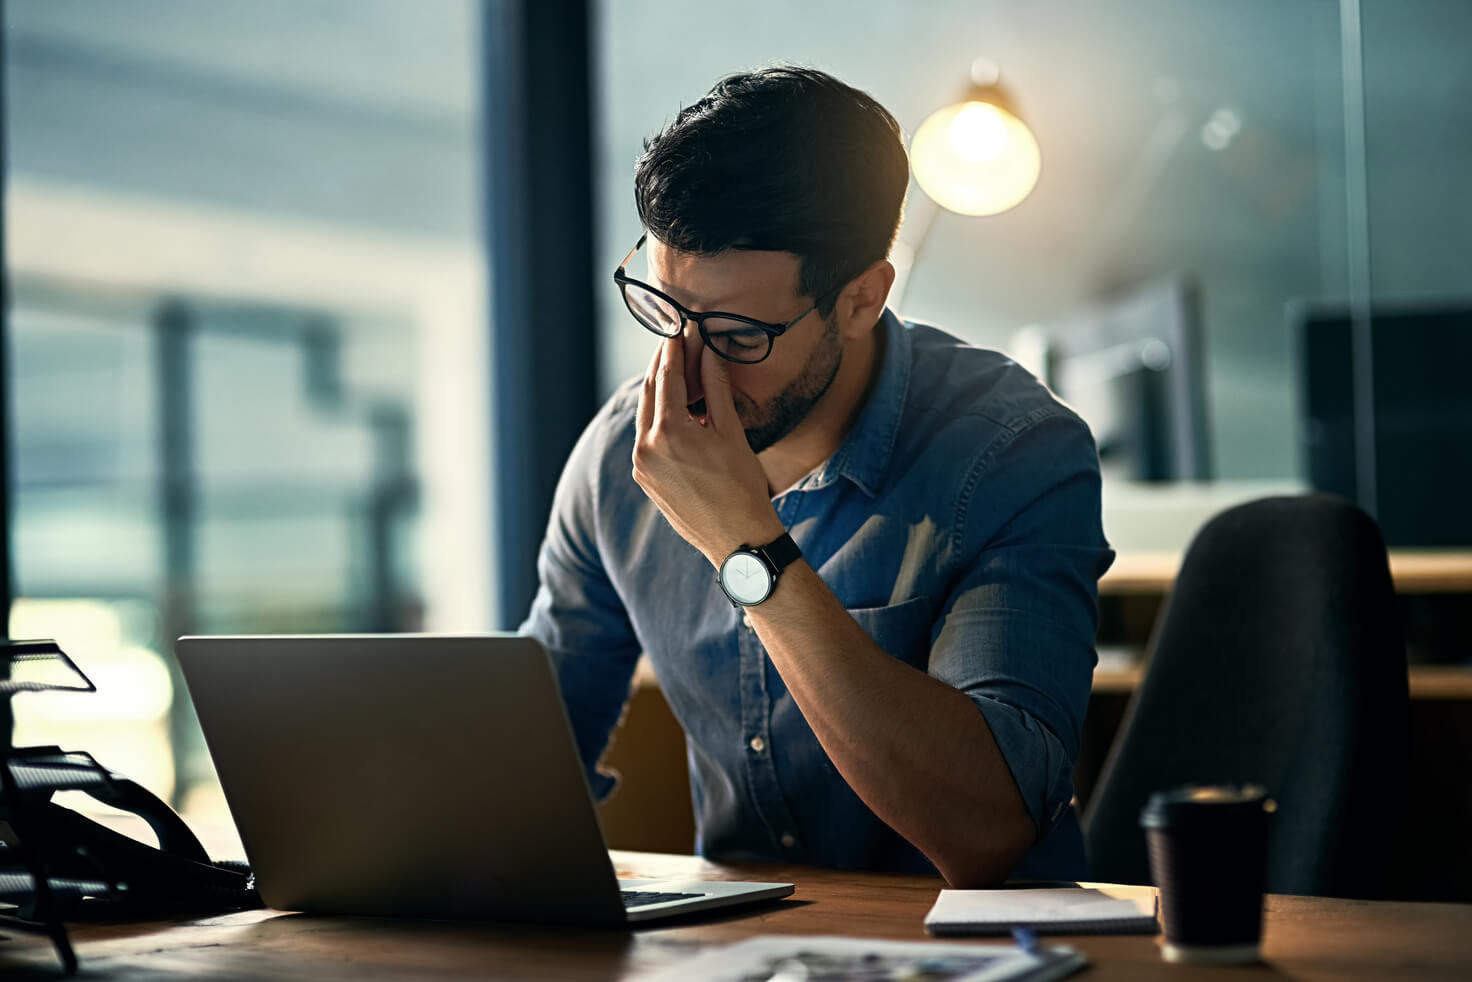 Man thinking in front of laptop-1